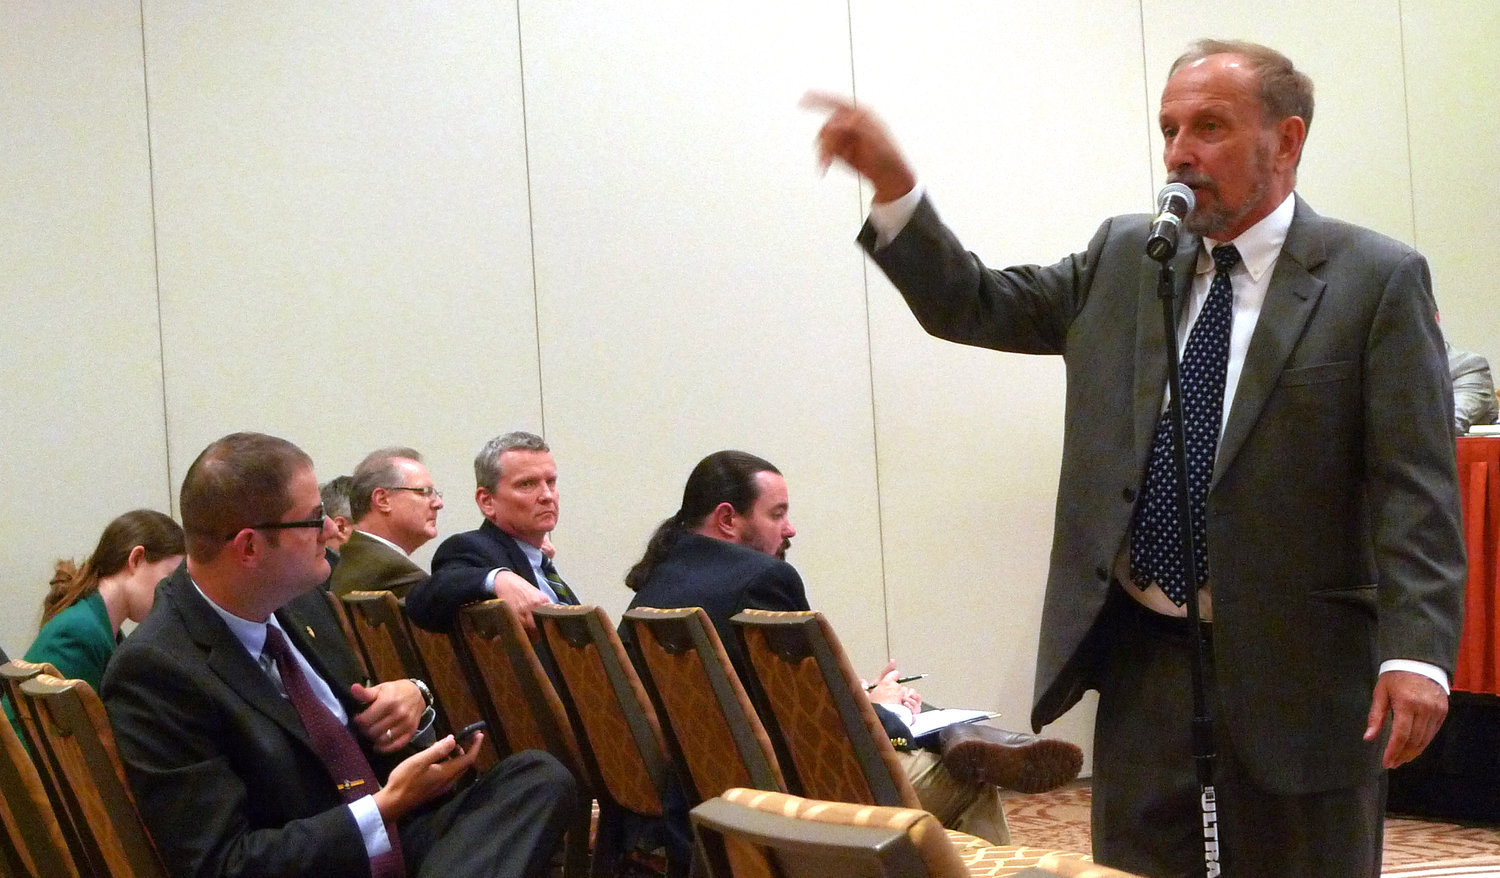 Gene Stilp addresses the audience during the July 23 hearing.